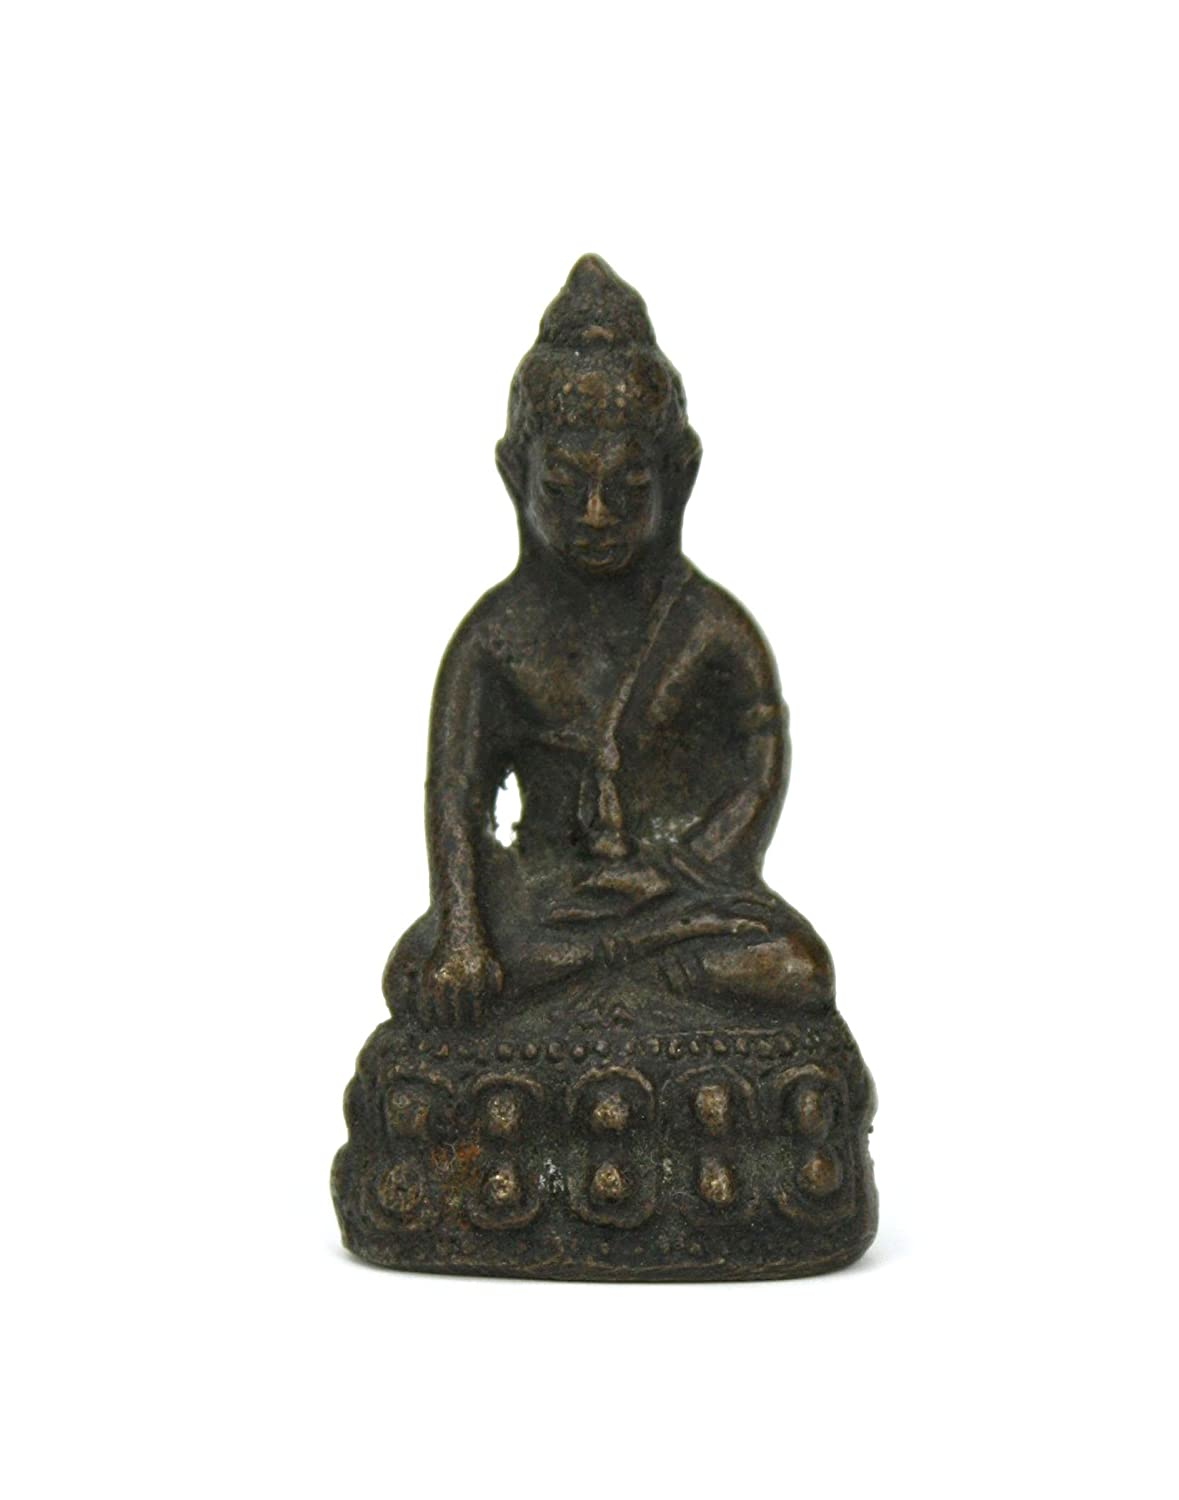 Authentic metal Buddha statue / amulet in antique bronze finish, approx 4.7cm high, IS Farang